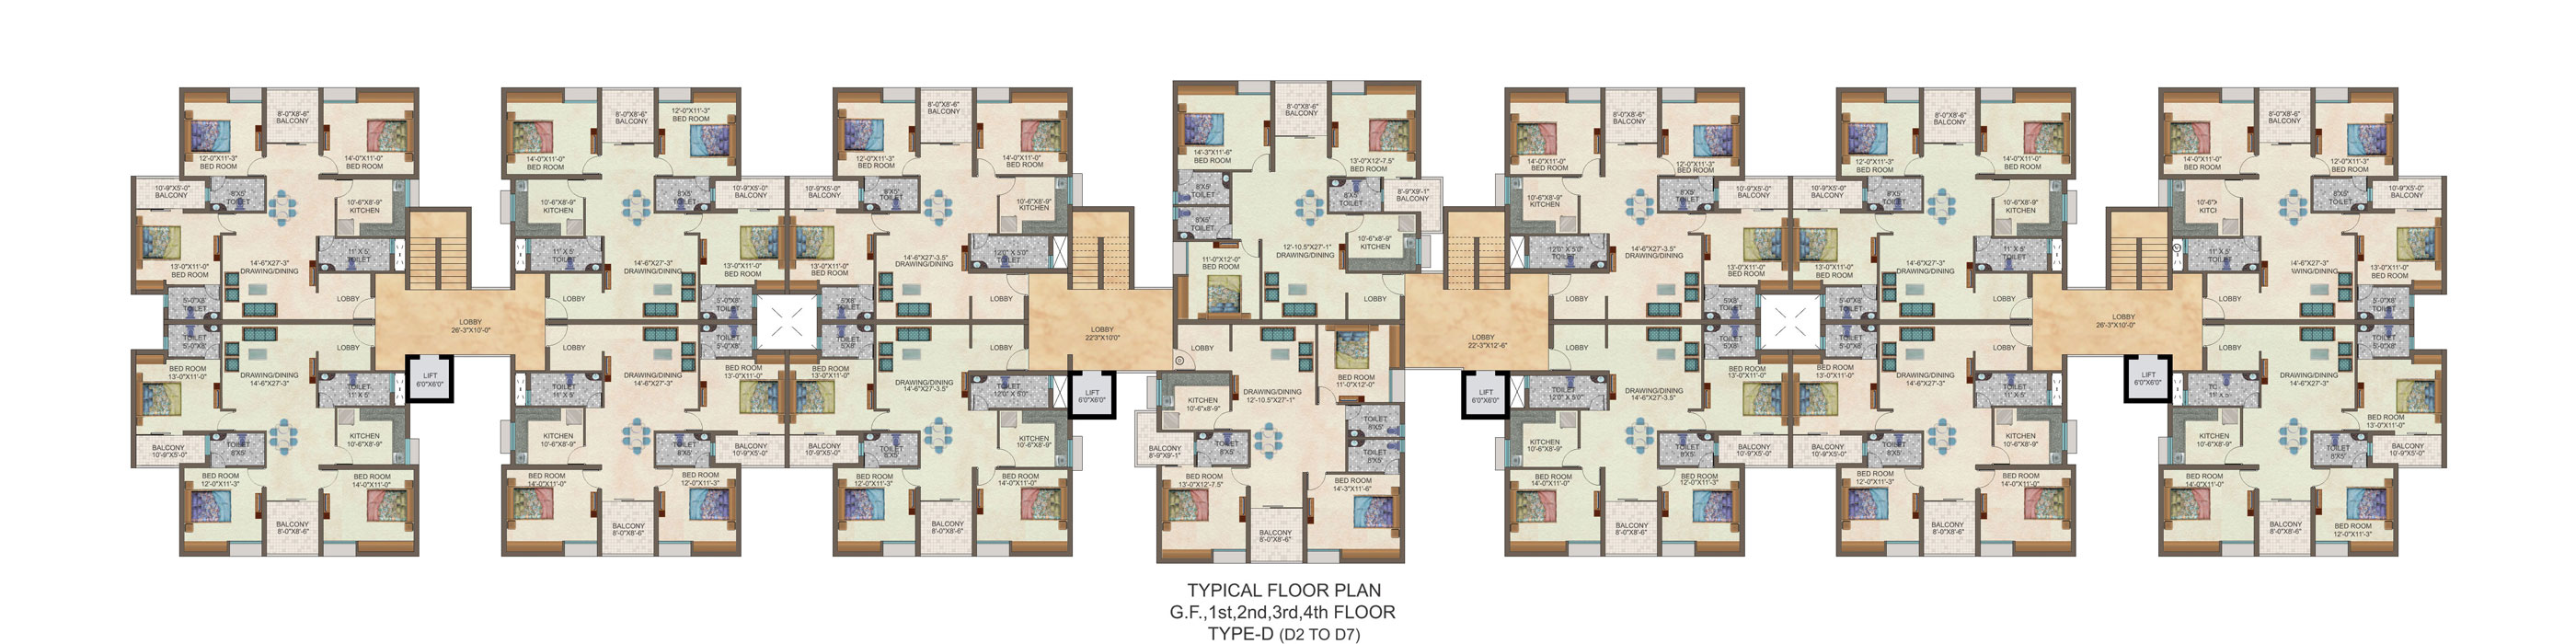 Ideal properties floor plans for Apartment design guide part 5